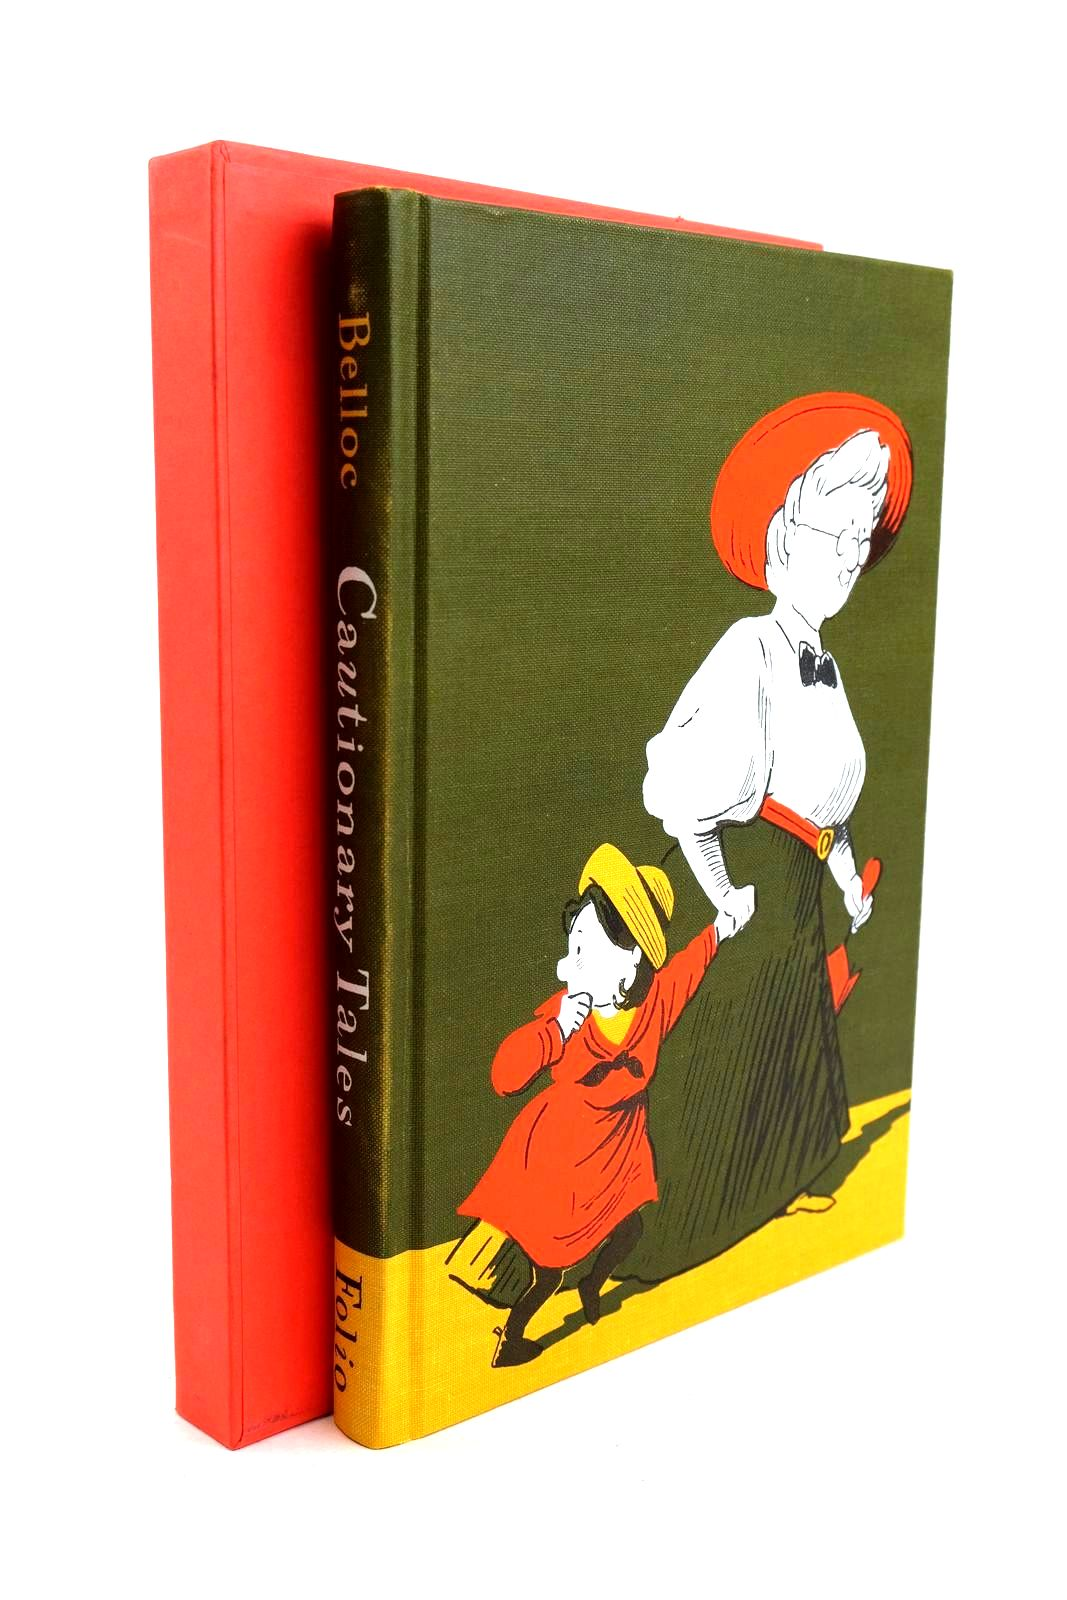 Photo of CAUTIONARY TALES AND OTHER VERSES written by Belloc, Hilaire illustrated by Simmonds, Posy published by Folio Society (STOCK CODE: 1320300)  for sale by Stella & Rose's Books